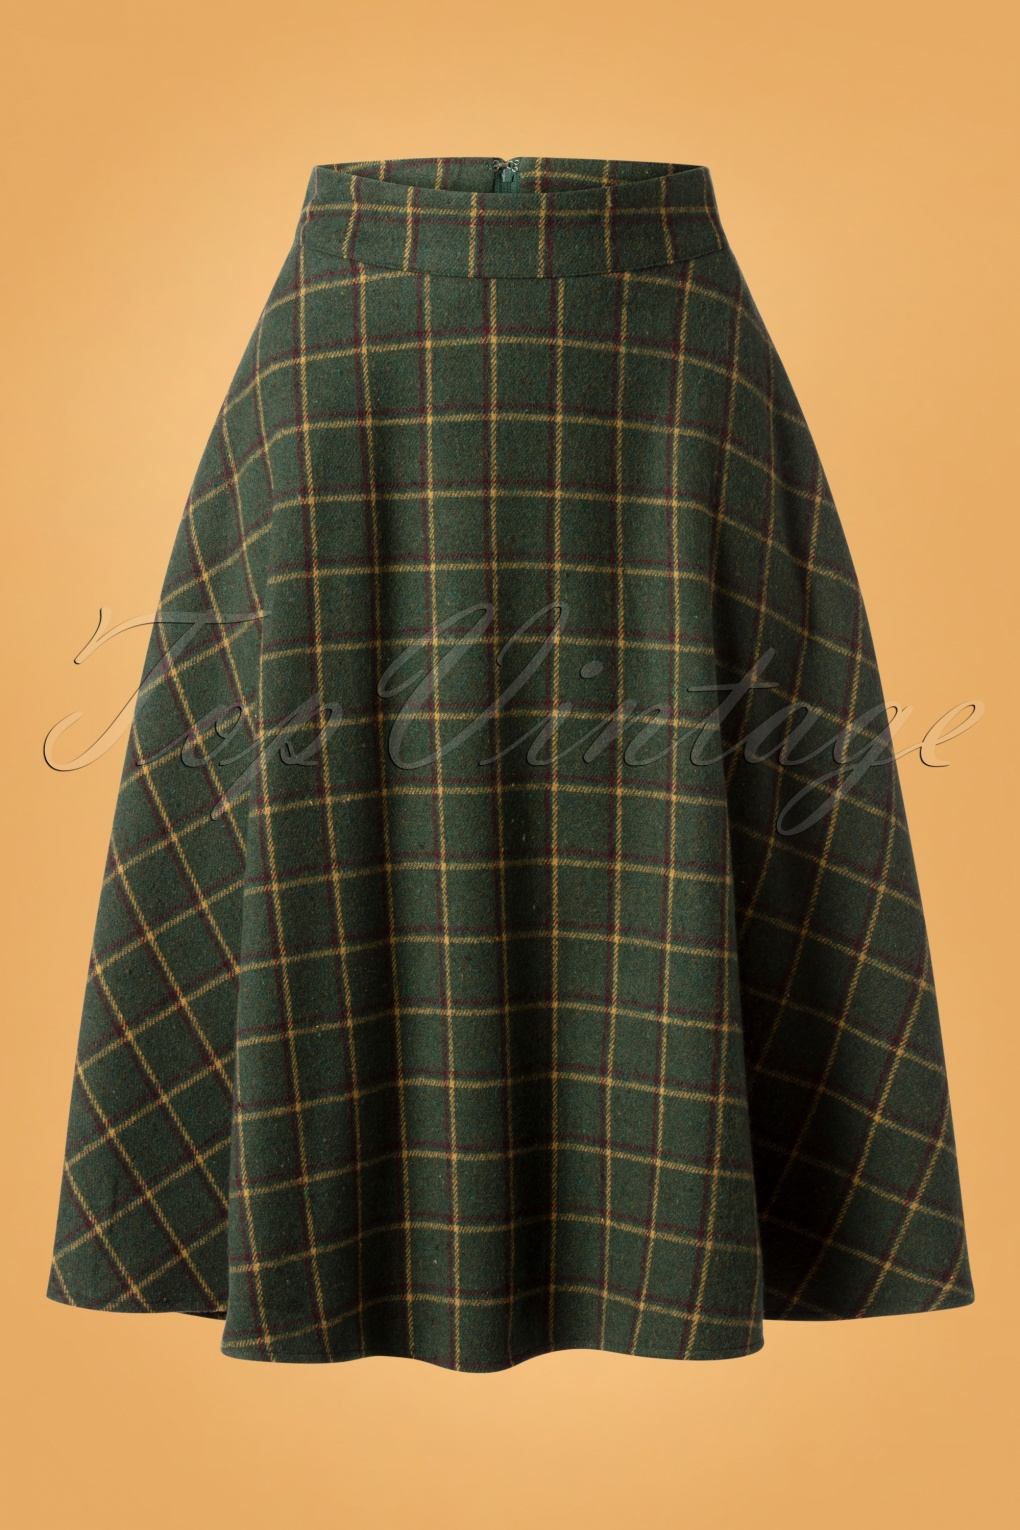 1940s Style Skirts- Vintage High Waisted Skirts 40s Polly Swing Skirt in Green £42.72 AT vintagedancer.com